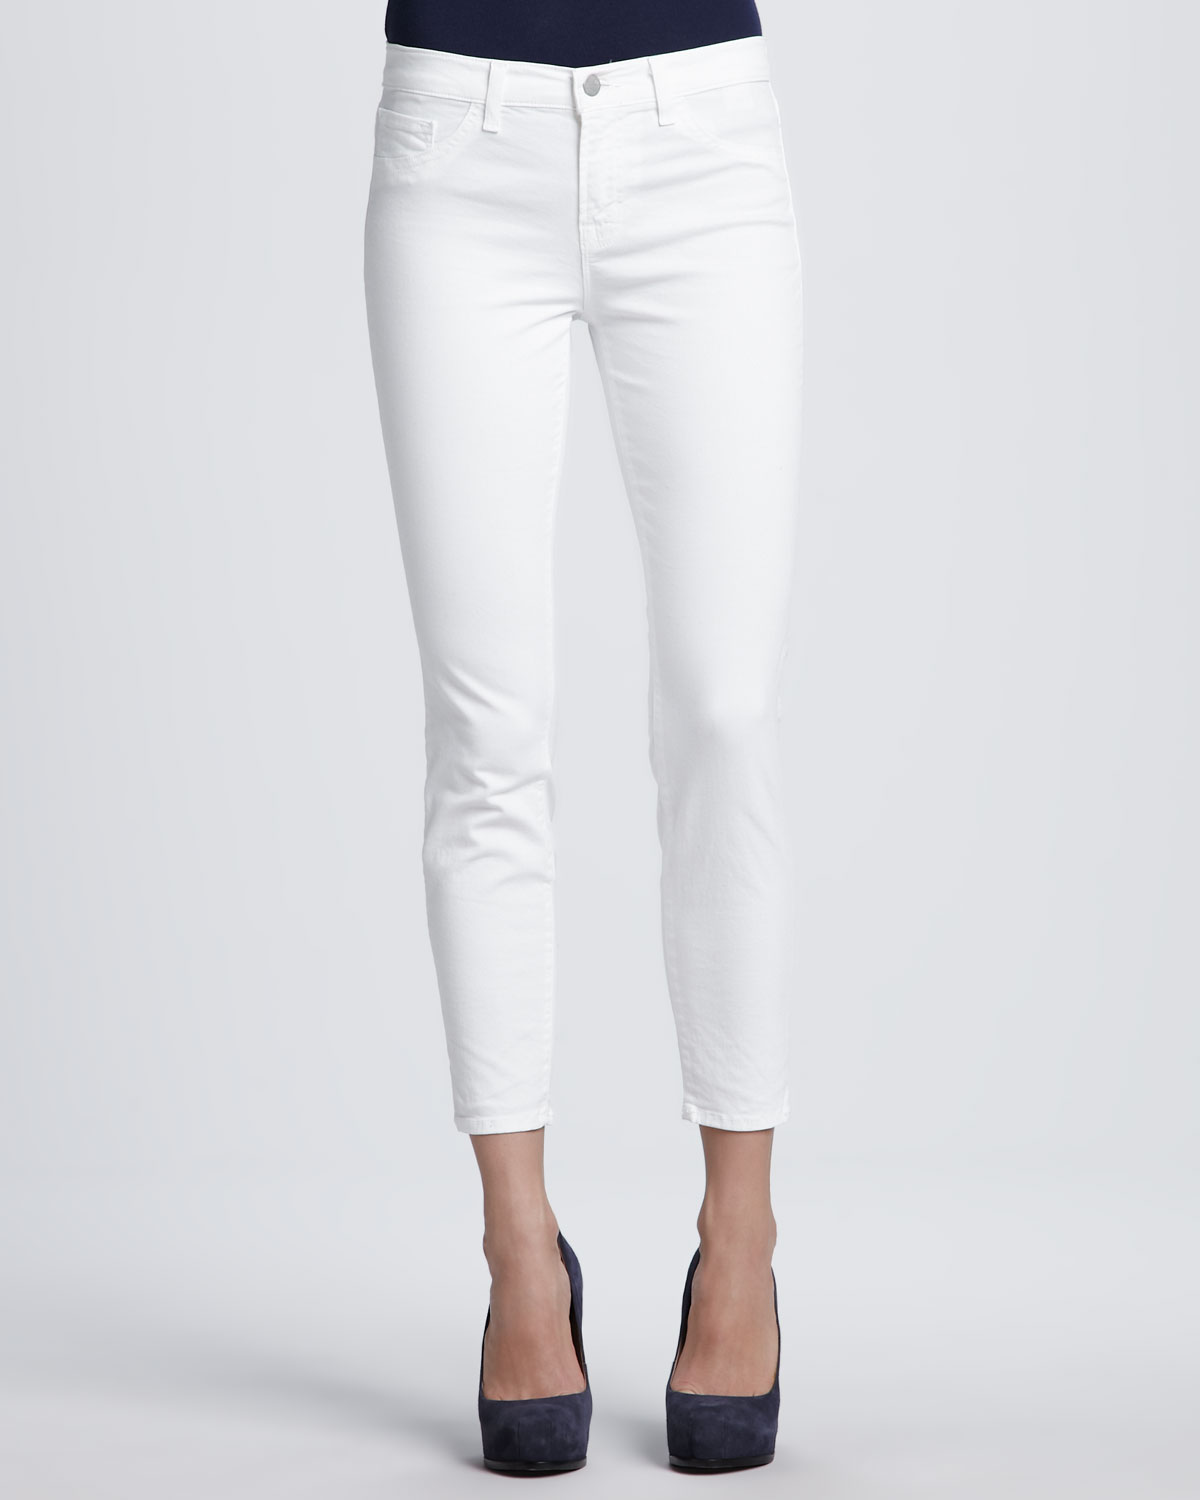 crop white jeans - Jean Yu Beauty